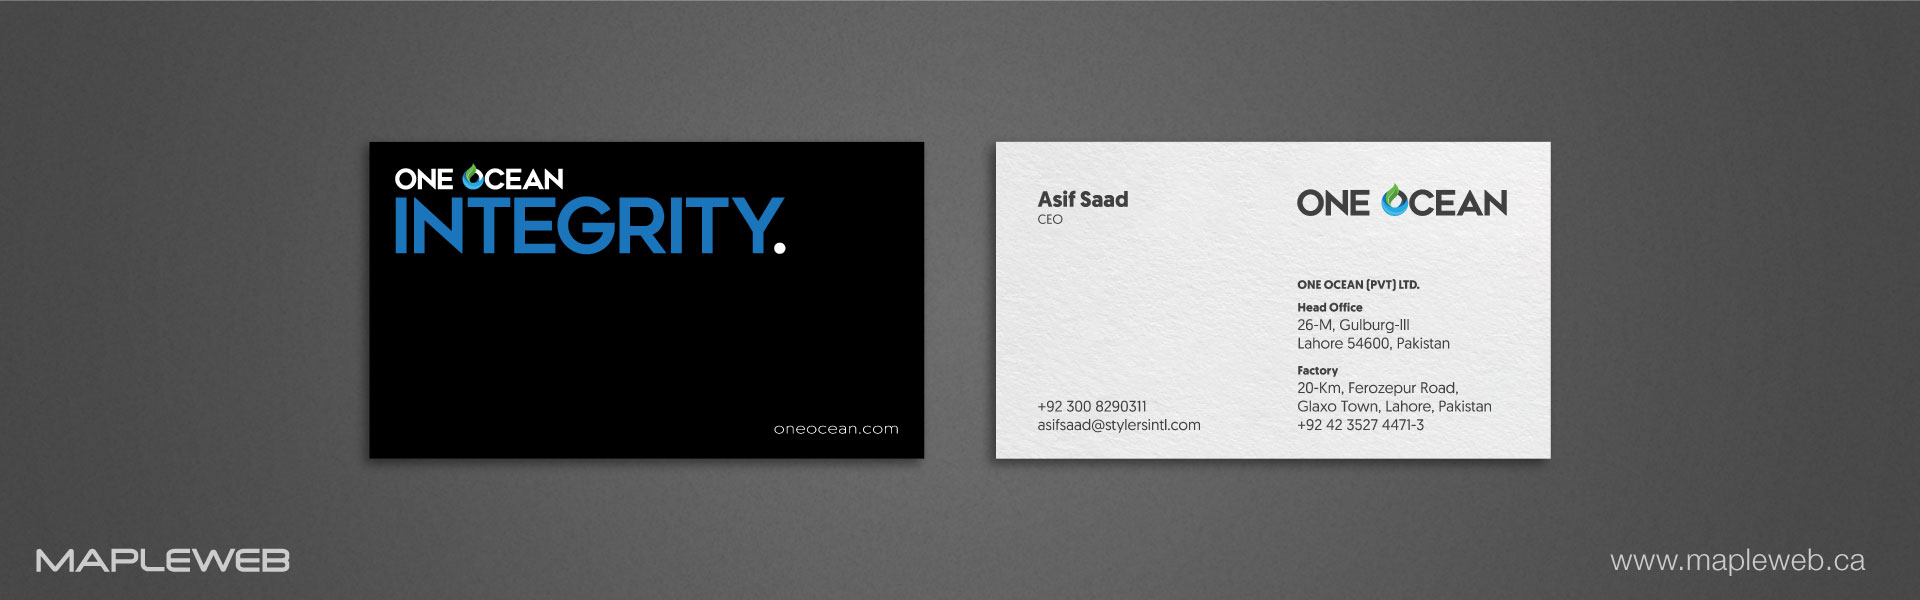 one-ocean-brand-logo-design-by-mapleweb-vancouver-canada-white-paper-black-and-white-business-card-mock